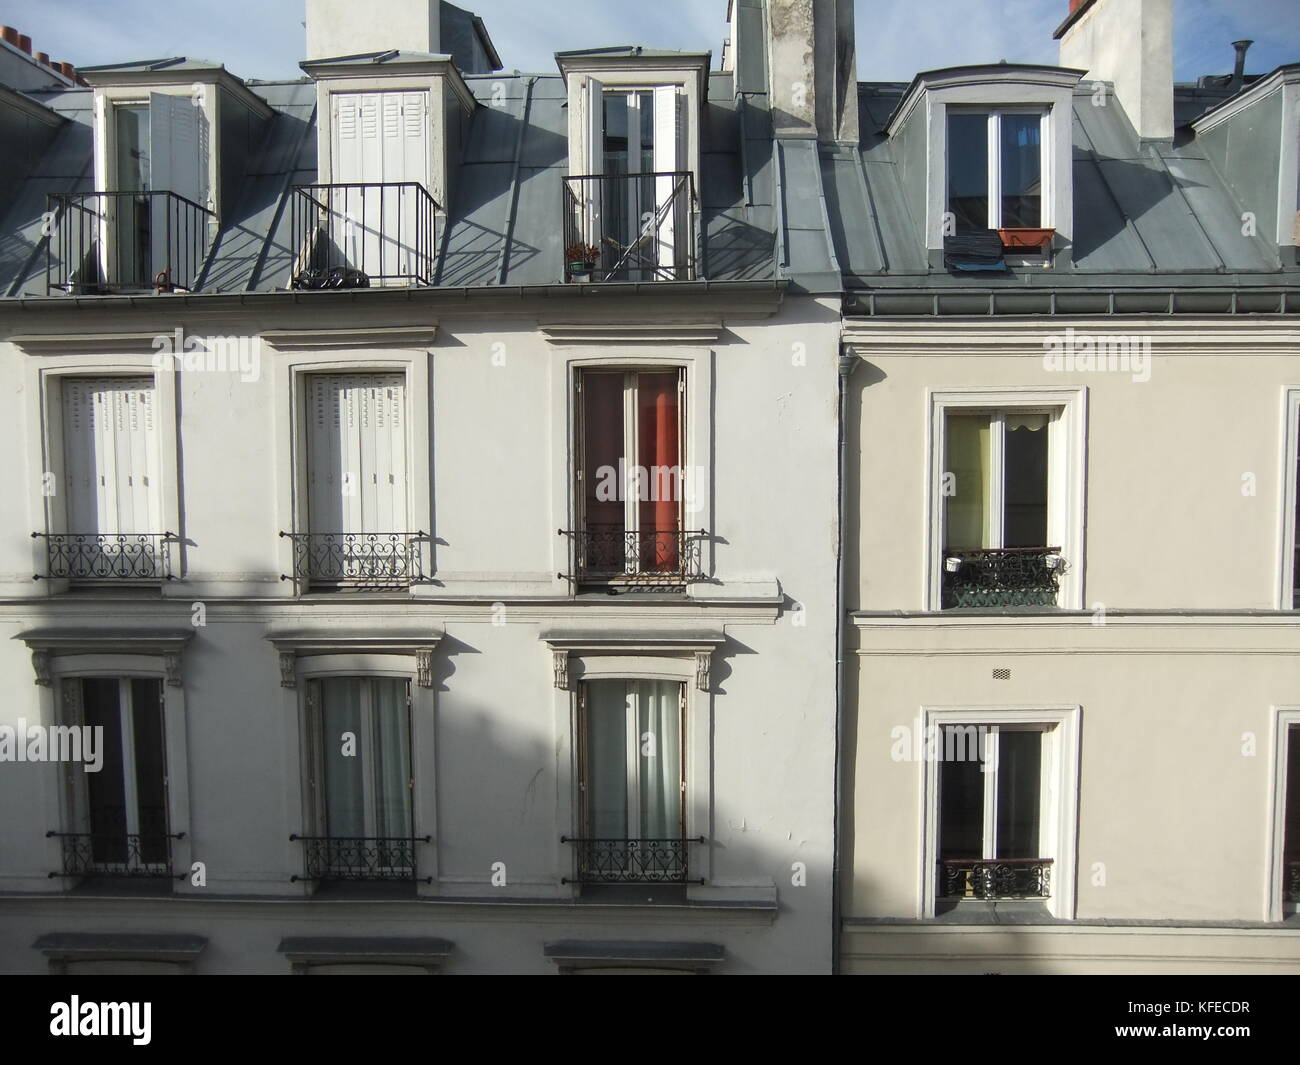 A Typical Set Of French Apartments In Montmartre, Paris, Looking Out Onto  The Street